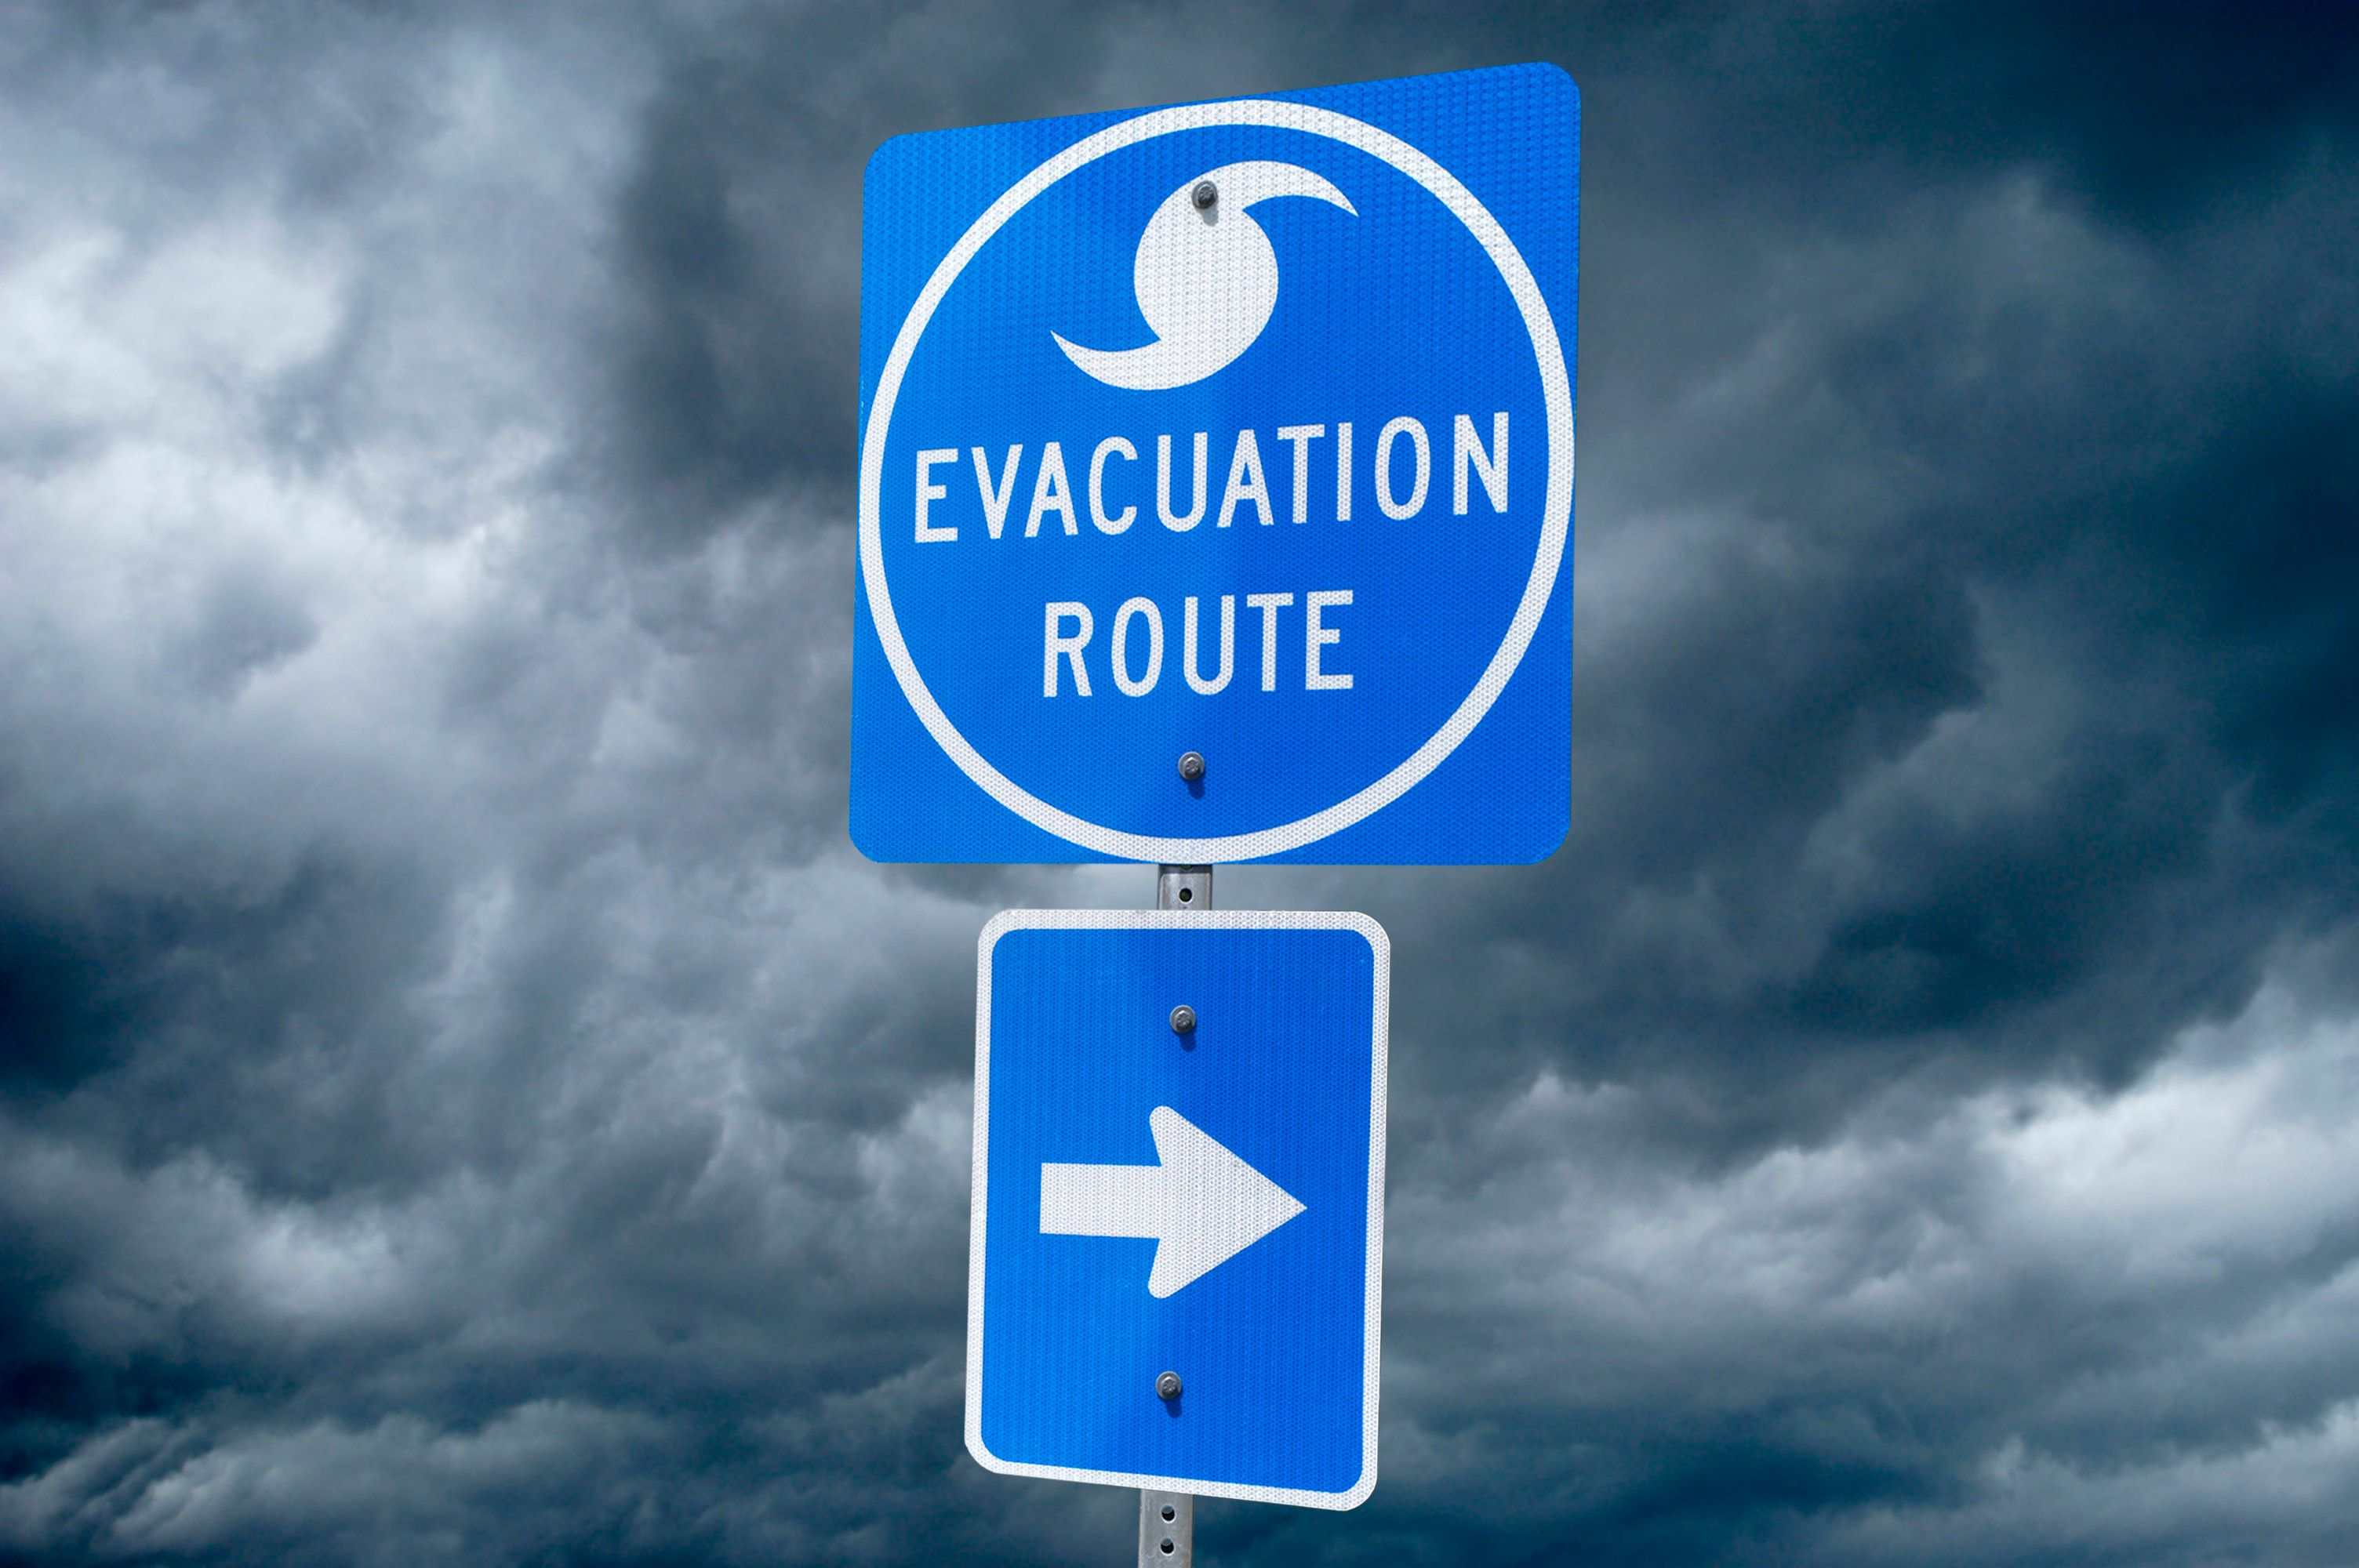 A Directional Sign in Front of Storm Clouds indicating the Storm Evacuation Route. Arrow on sign is directing to the right.